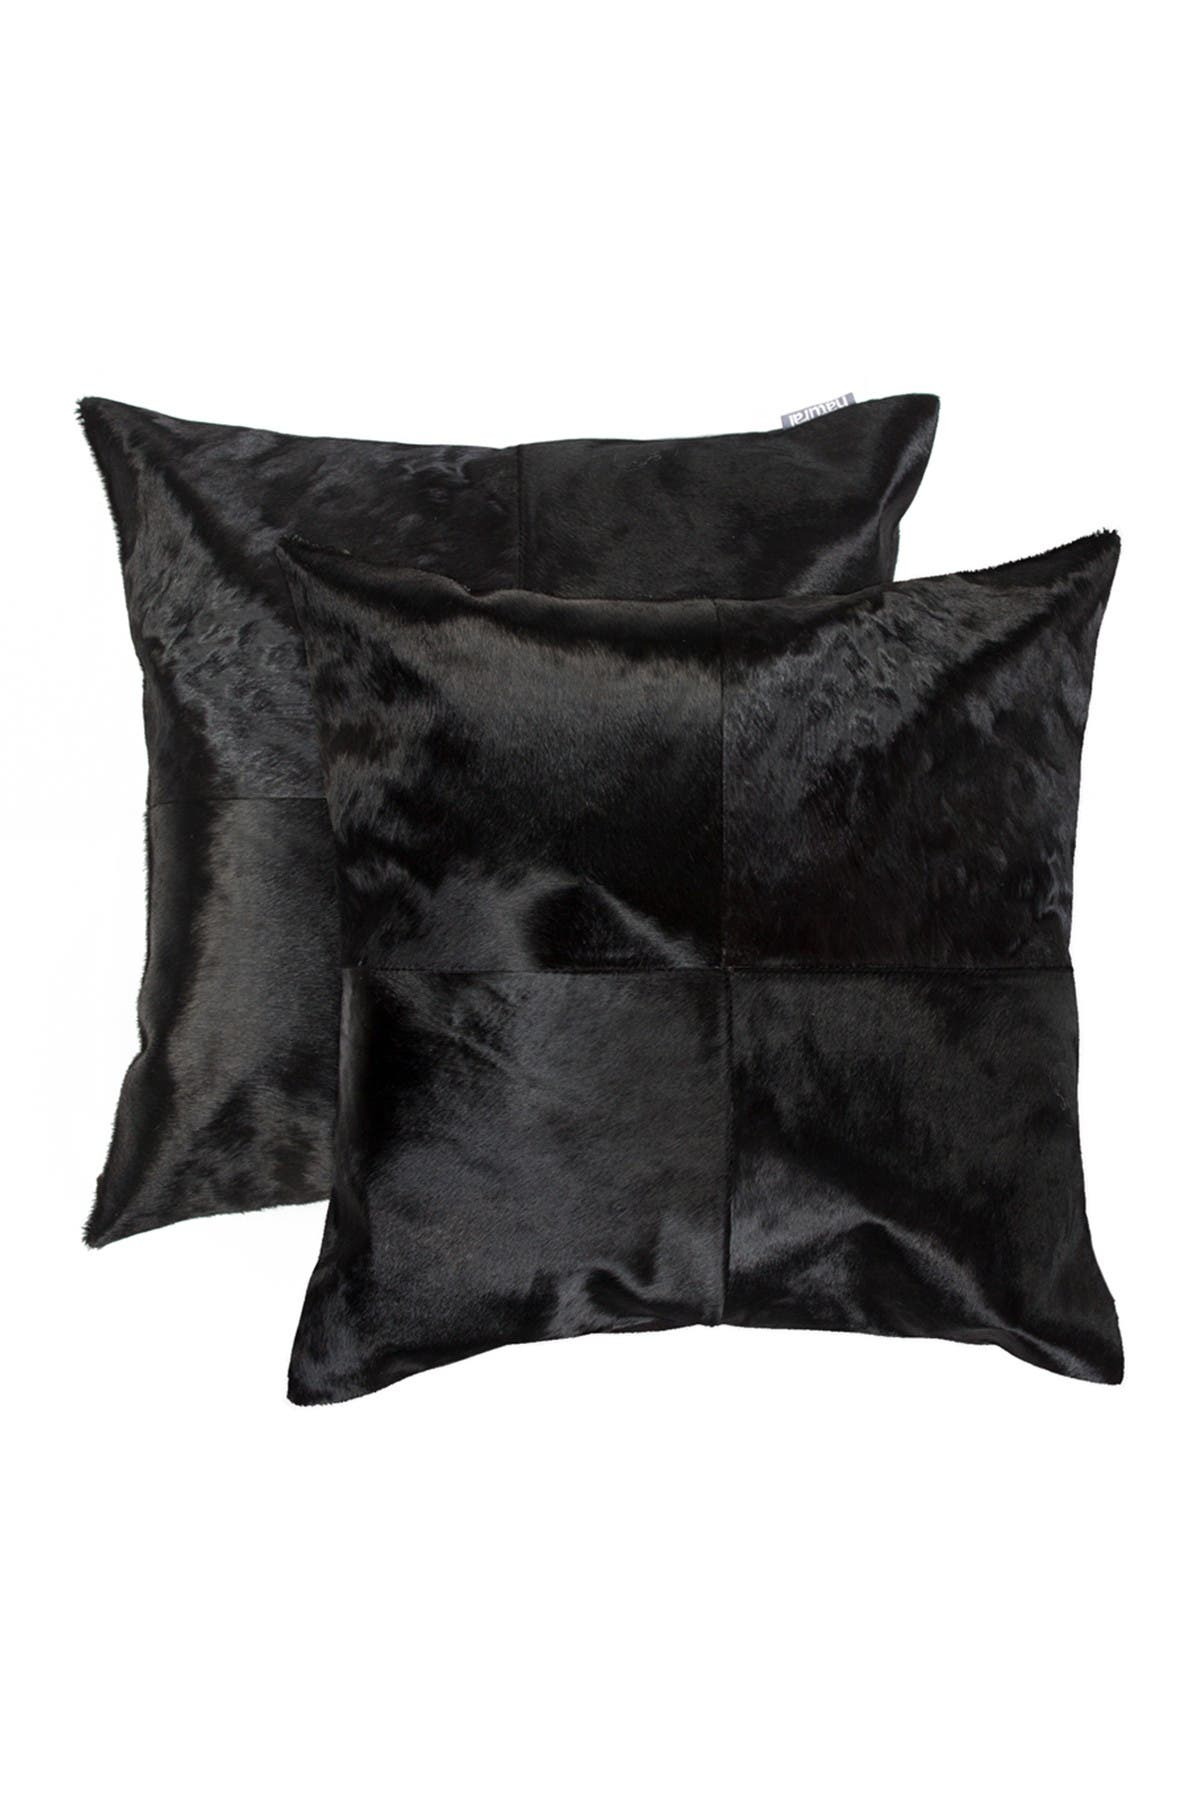 "Image of Natural Torino Quattro Genuine Cowhide Pillow - Set of 2 - 18""x18"" - Black"